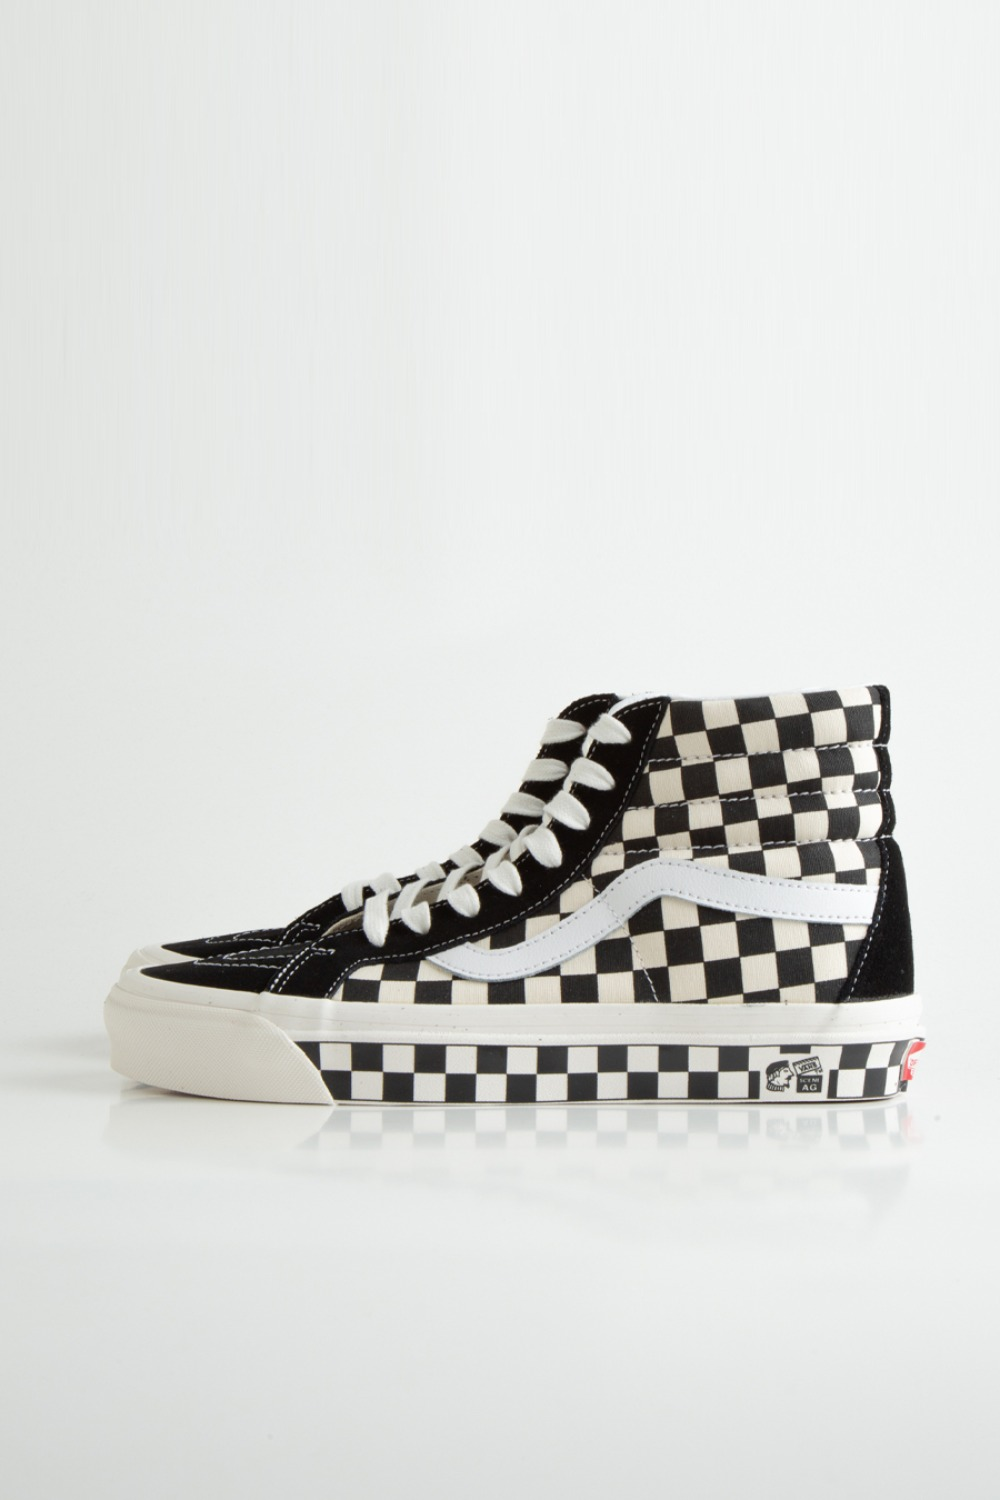 SK8-HI 38 DX(ANAHEIM FACTORY) OG BLACK/OG CHECKER